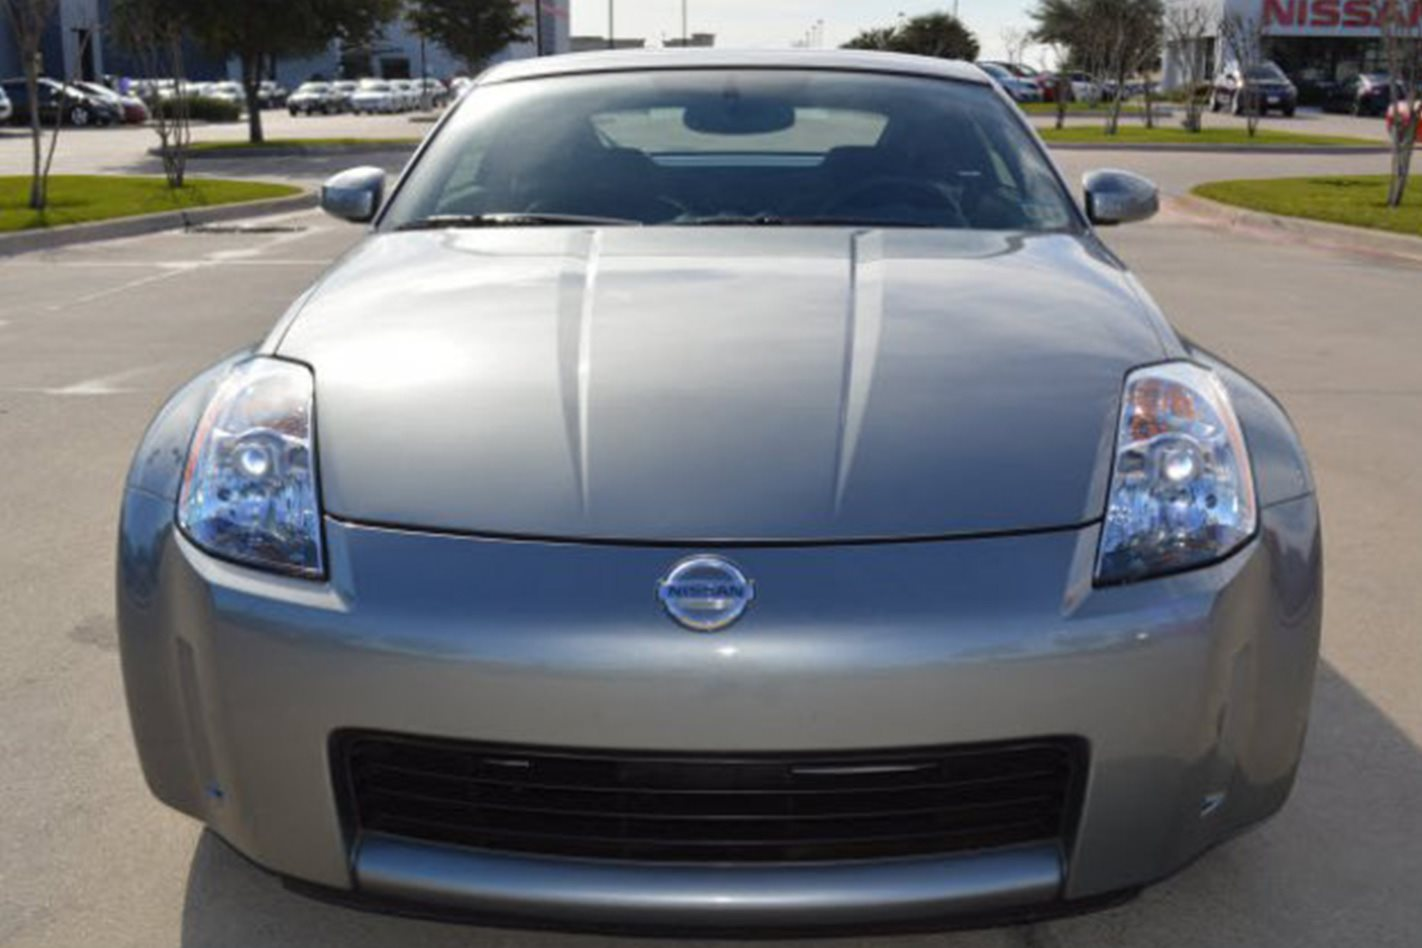 2003 Nissan 350Z headlights